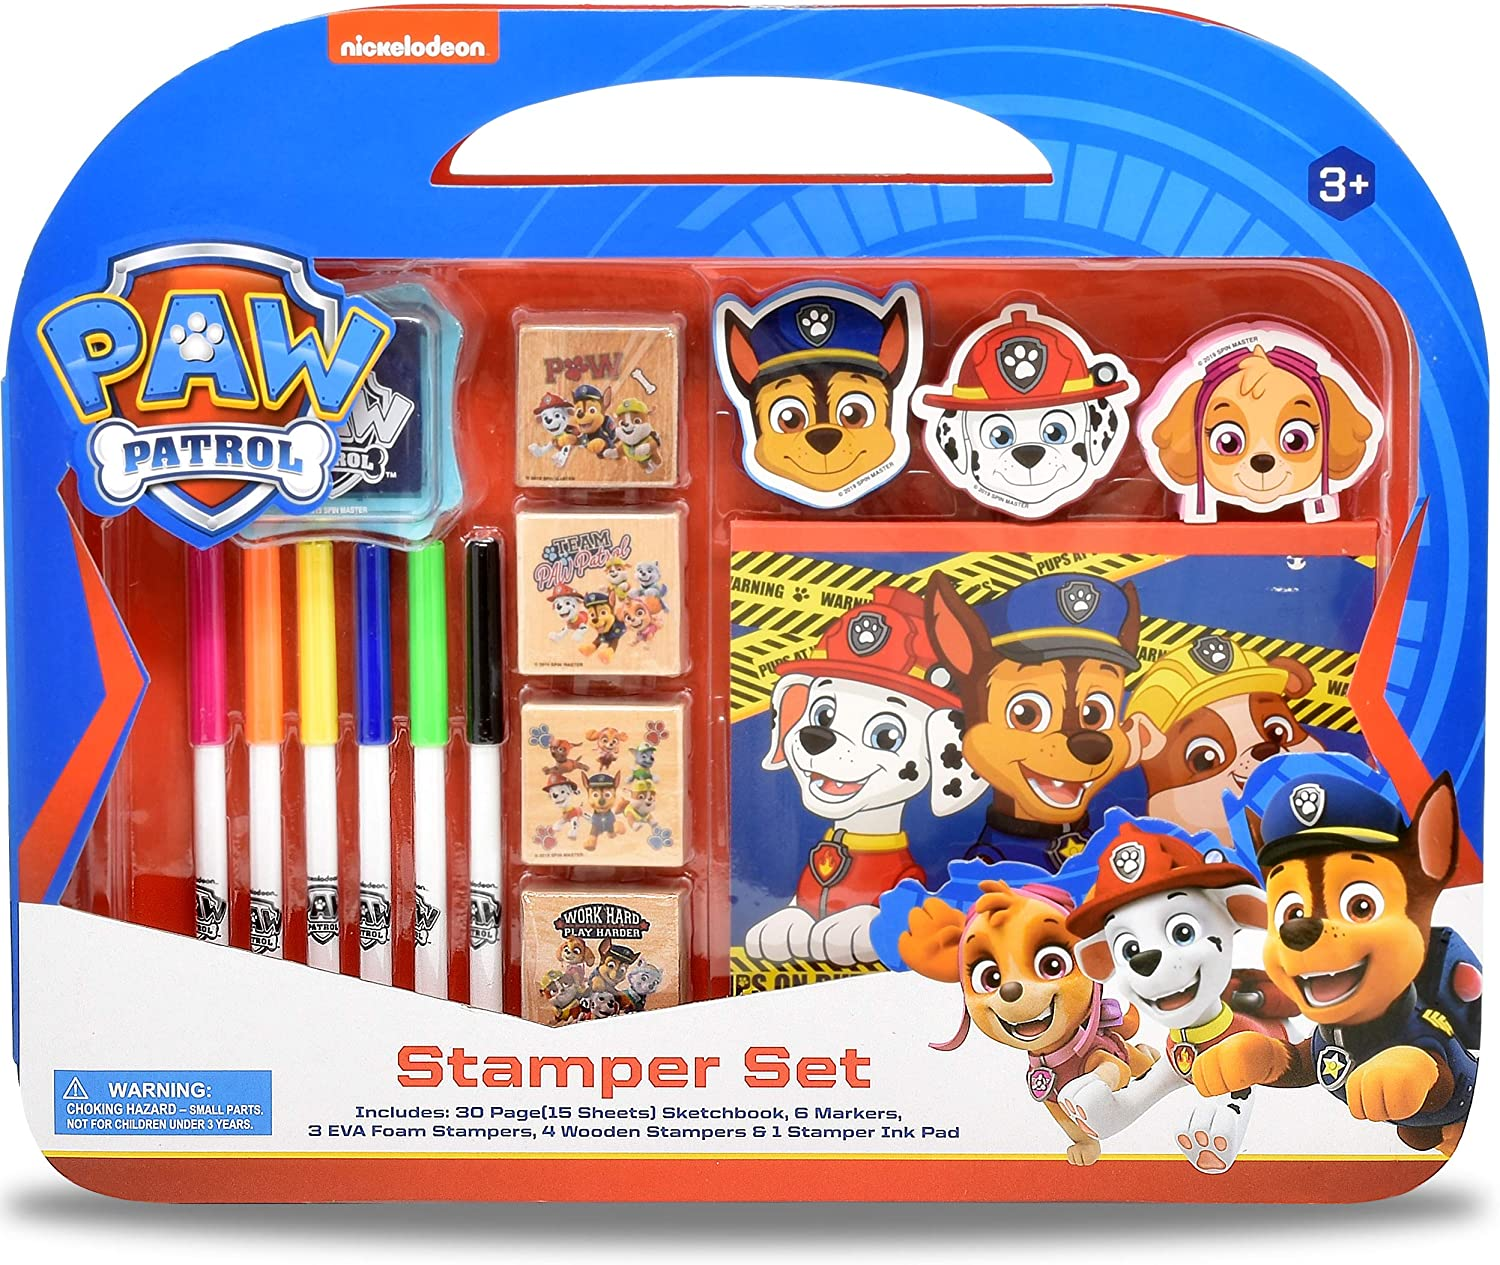 Paw Patrol Coloring Stamper and Activity Set  Mess Free Craft Kit for Toddlers and Kids  Drawing Art Supplies Included Sketch Book  6 Color Markers  3 Foam and 4 Wooden Stampers